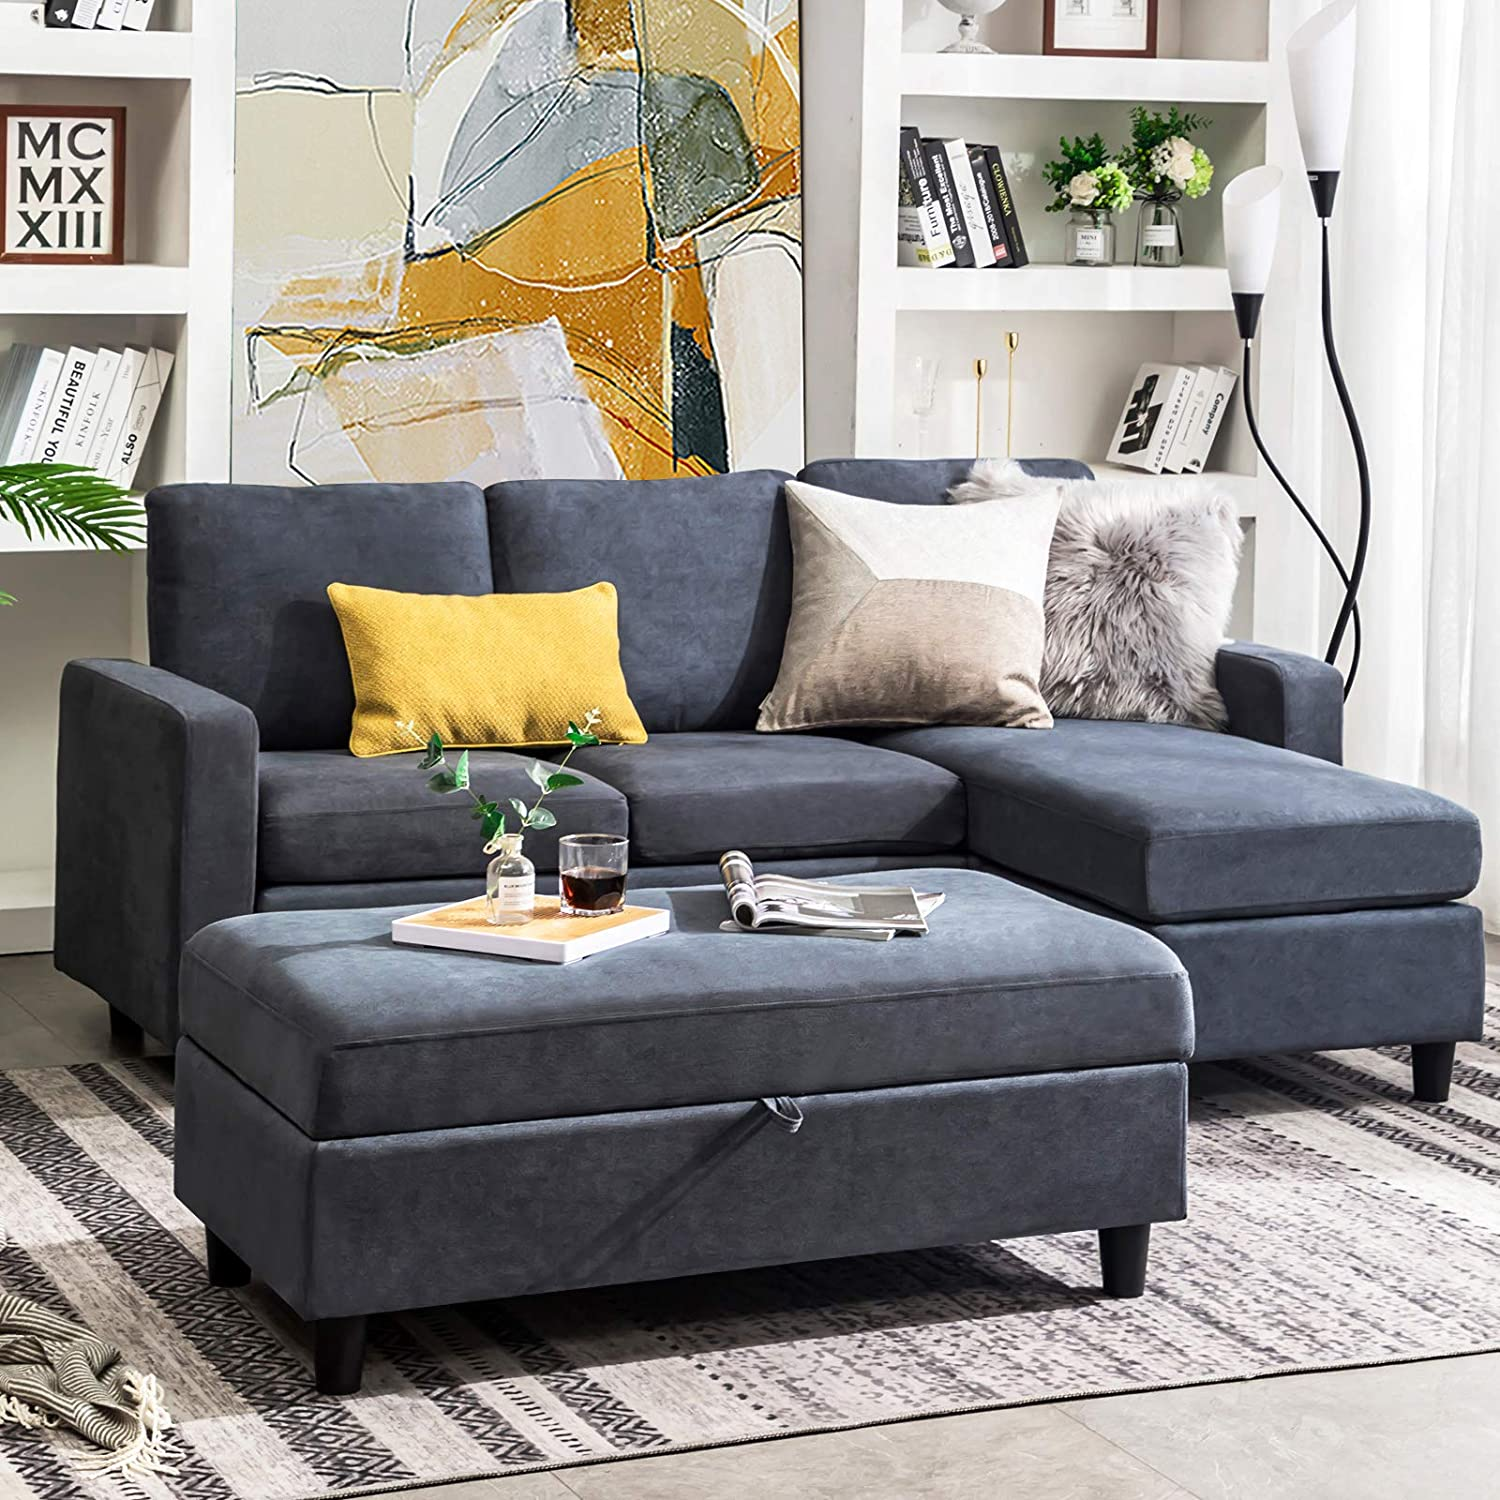 Best For Soft Fabric: HONBAY Linen Fabric Sofa With Storage Ottoman